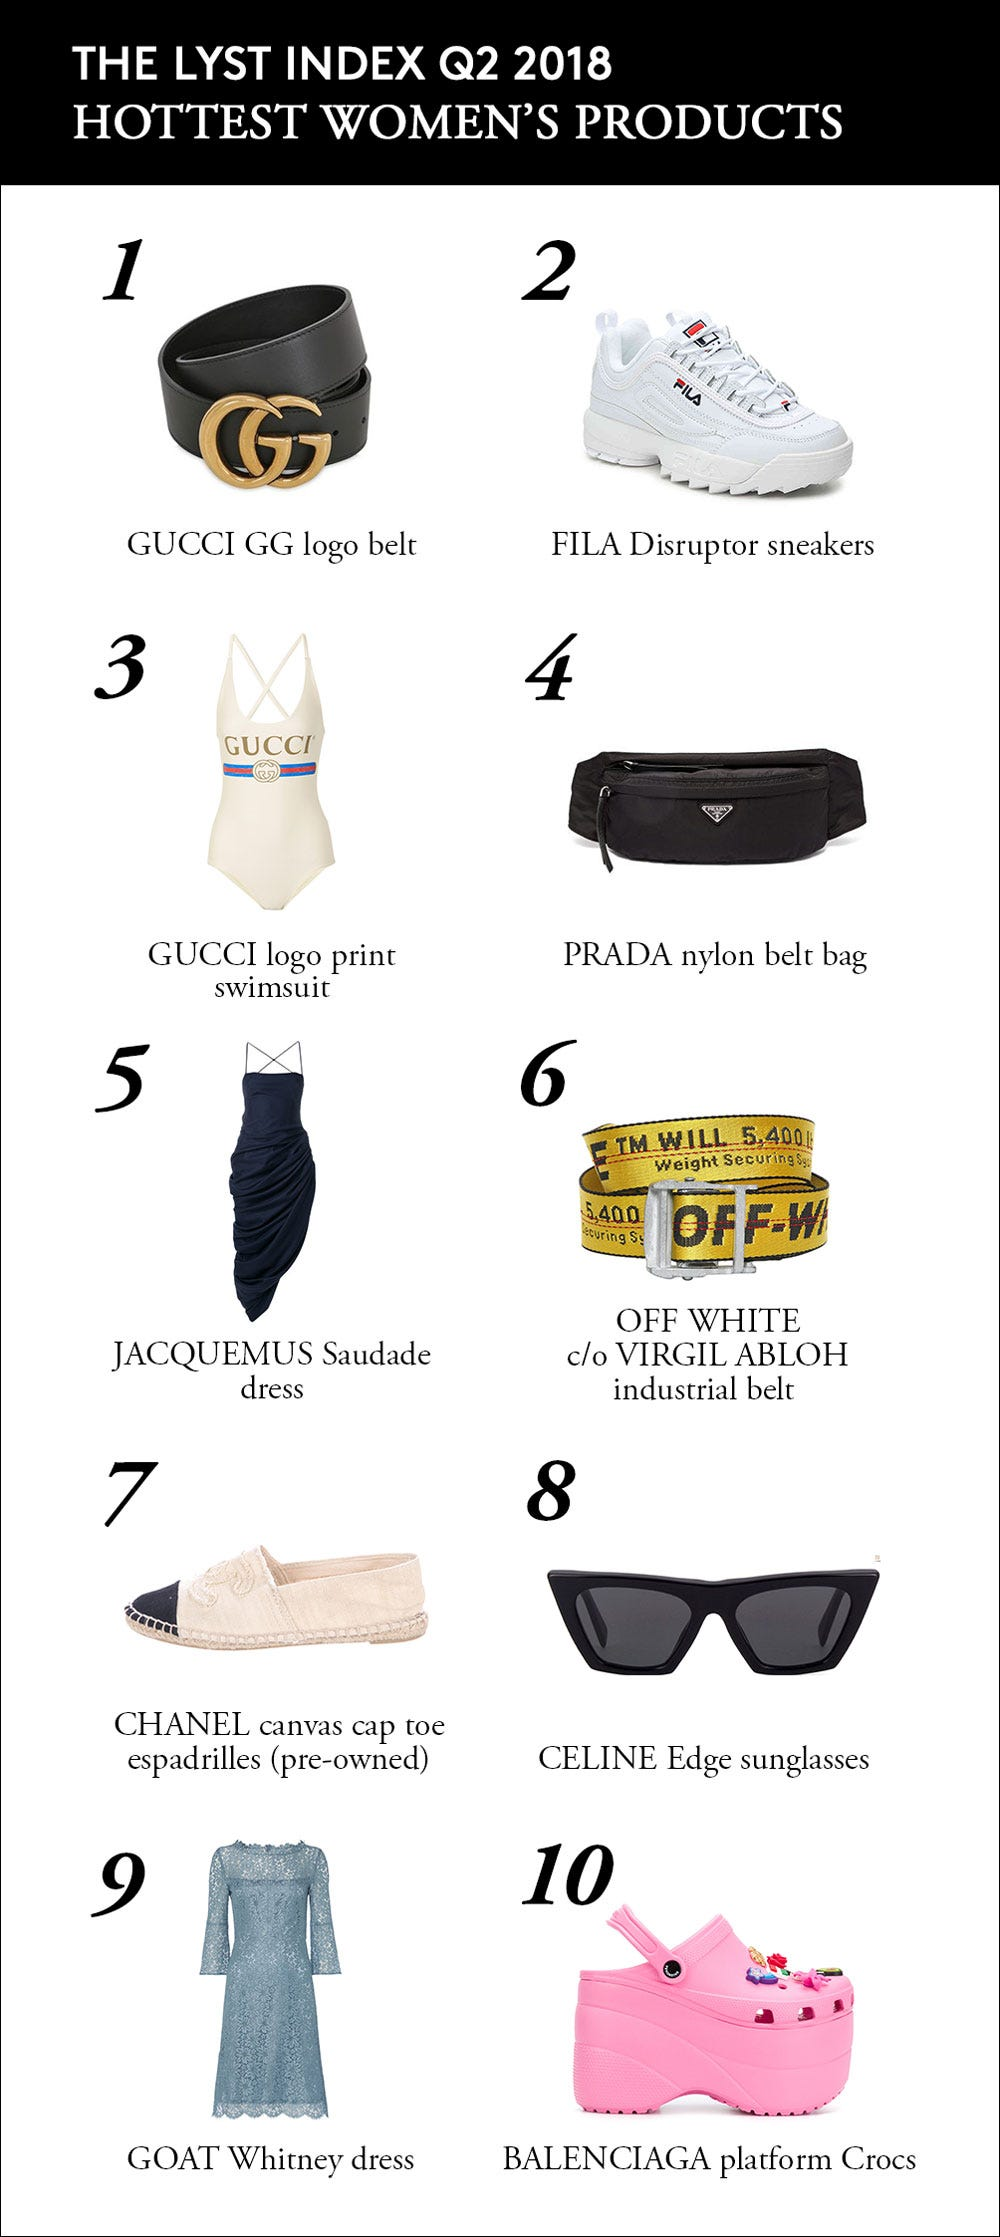 Lyst Hottest Brands Of 2018 List